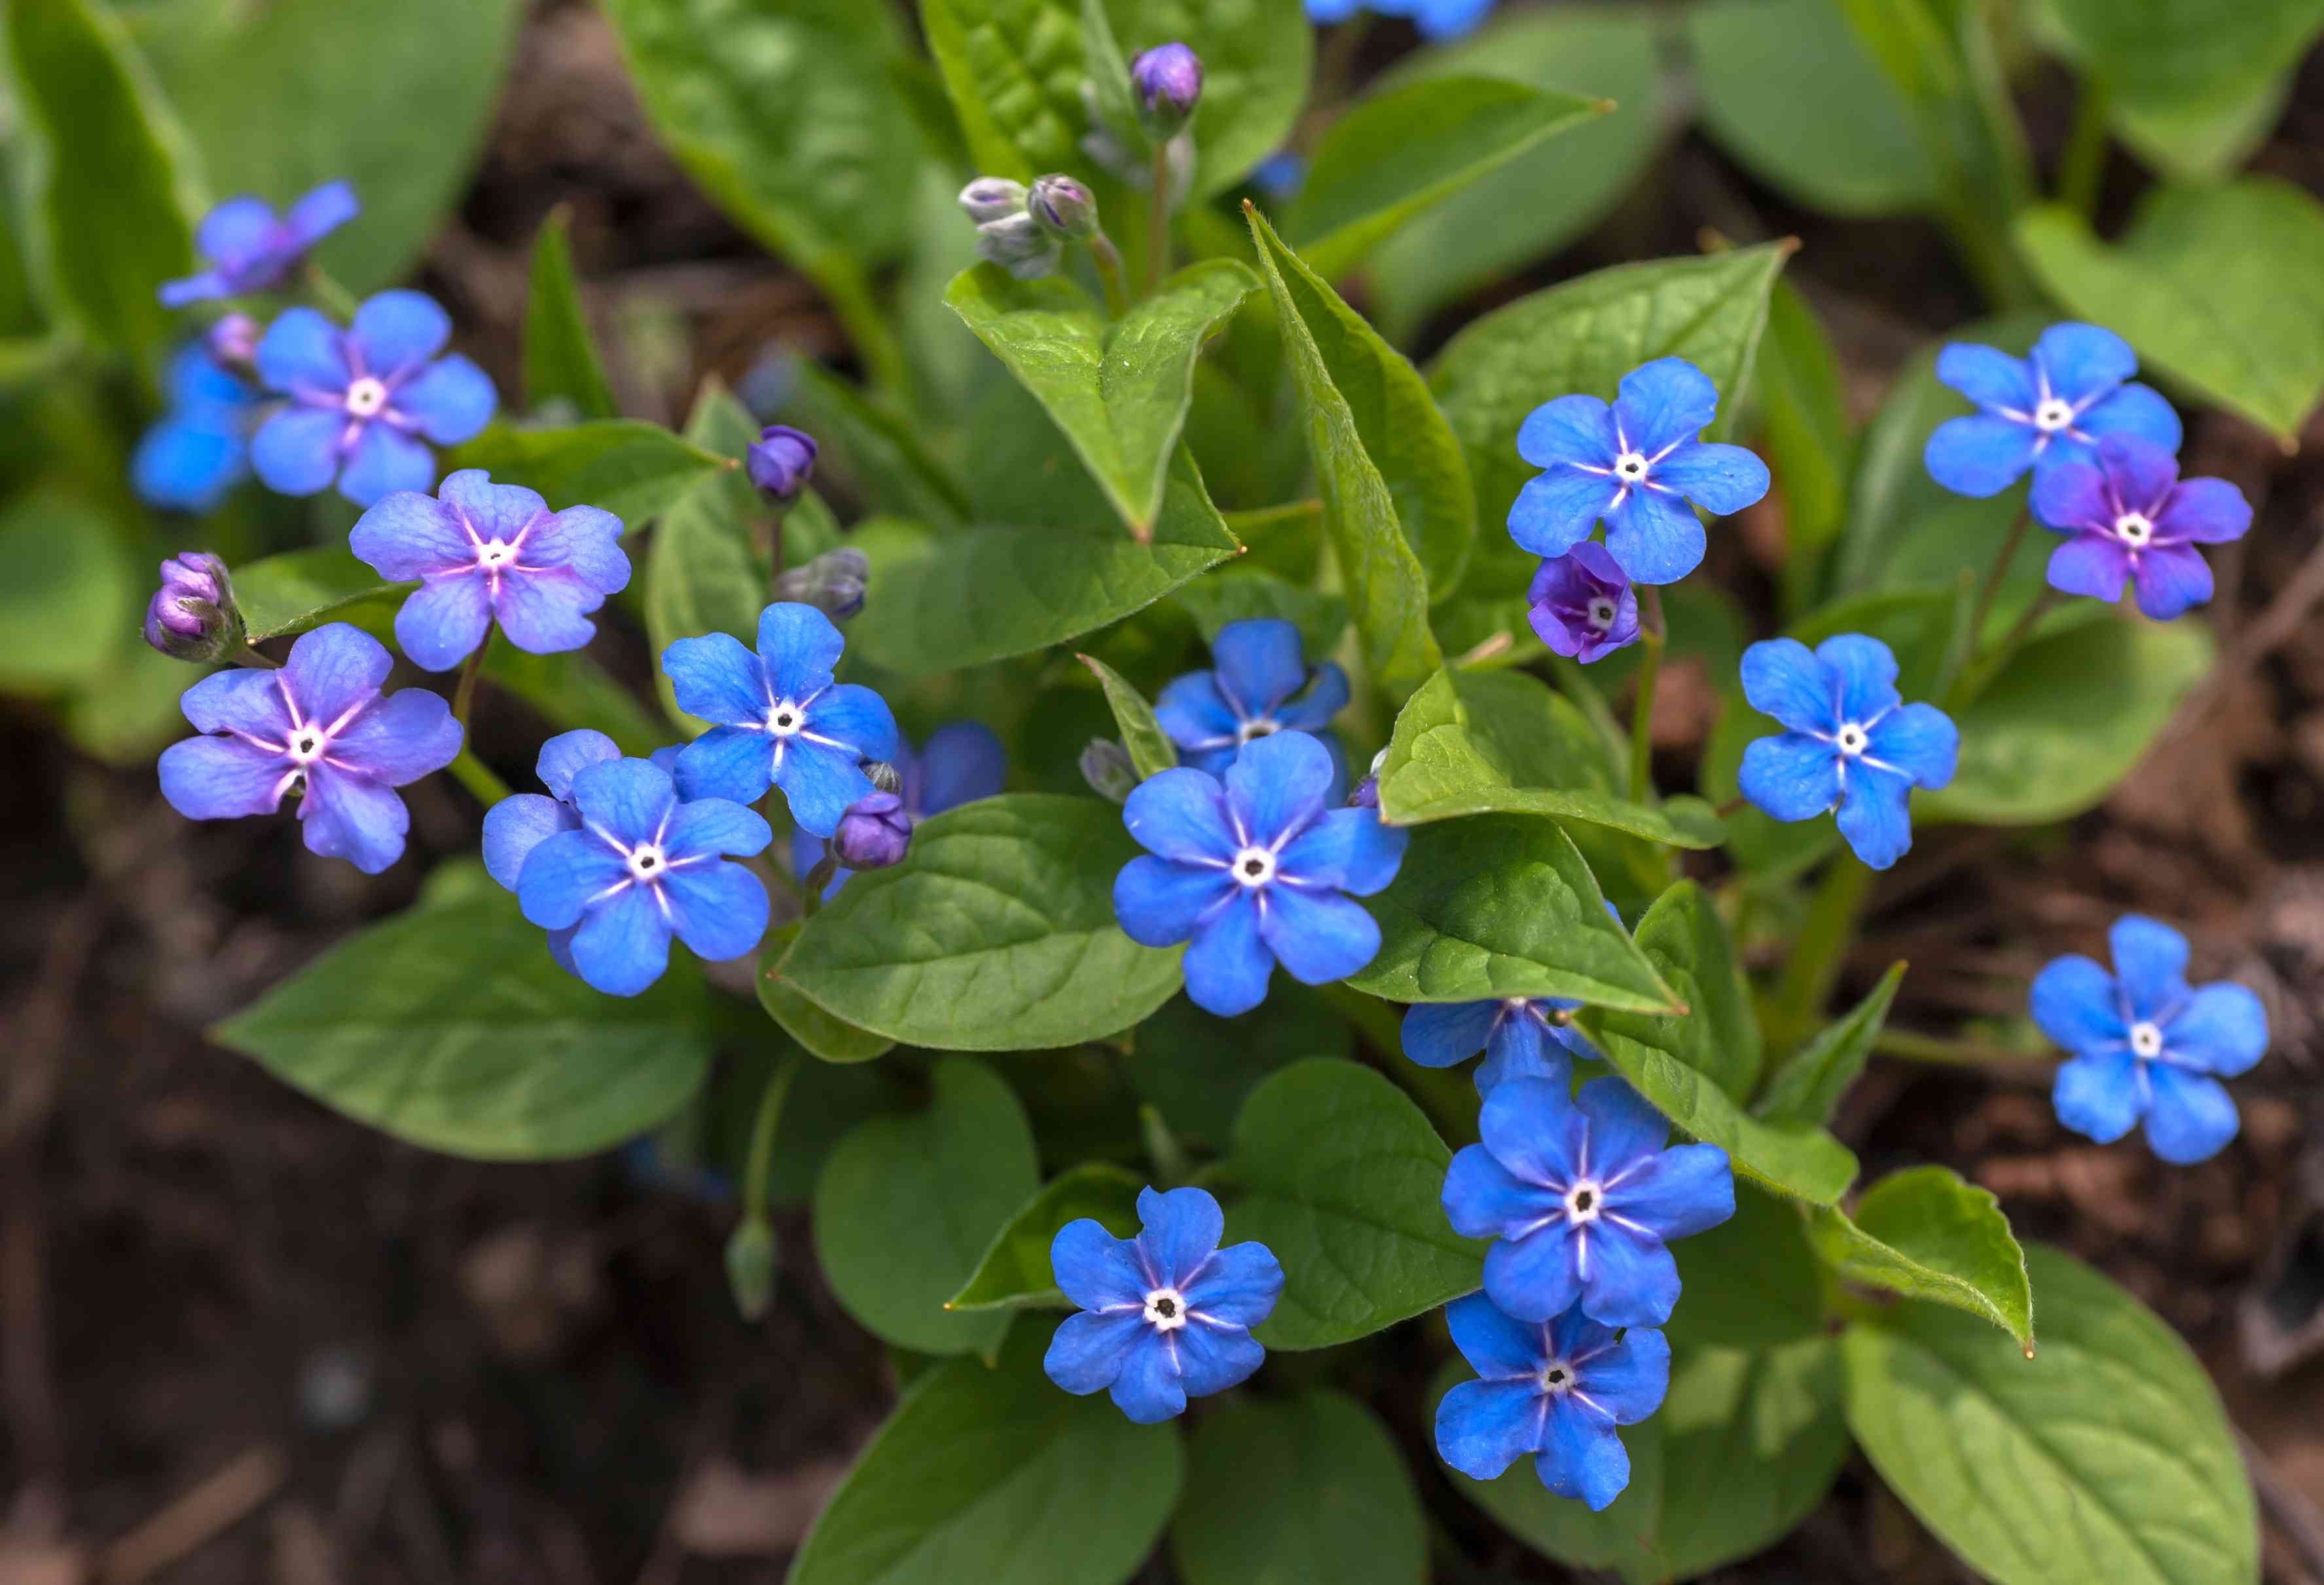 Barrenwort perennial plant with royal blue and purple flowers